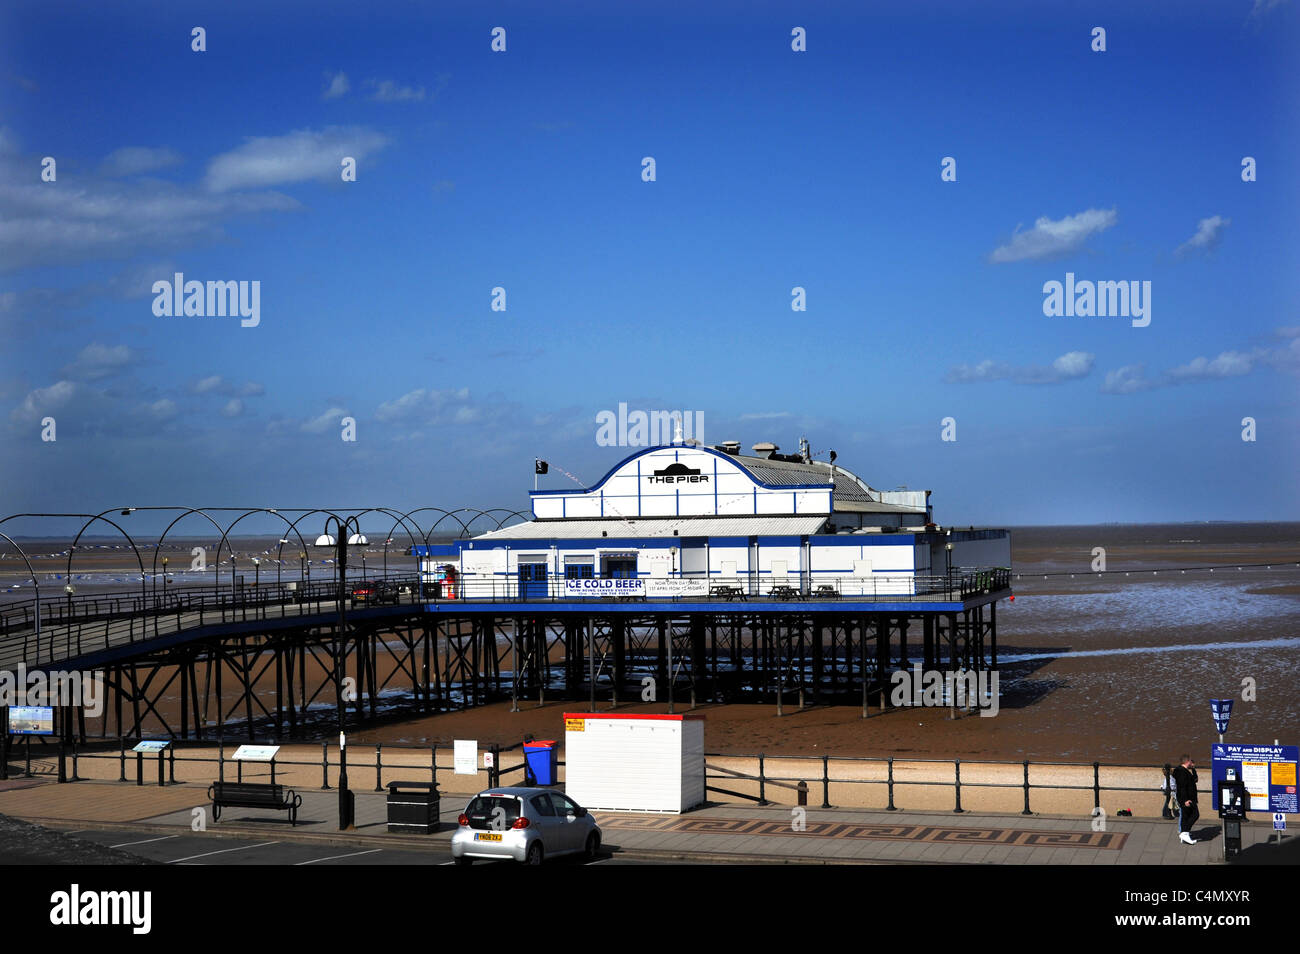 Cleethorpes Pier 39 a traditional victorian pier which is now a nightclub - Stock Image